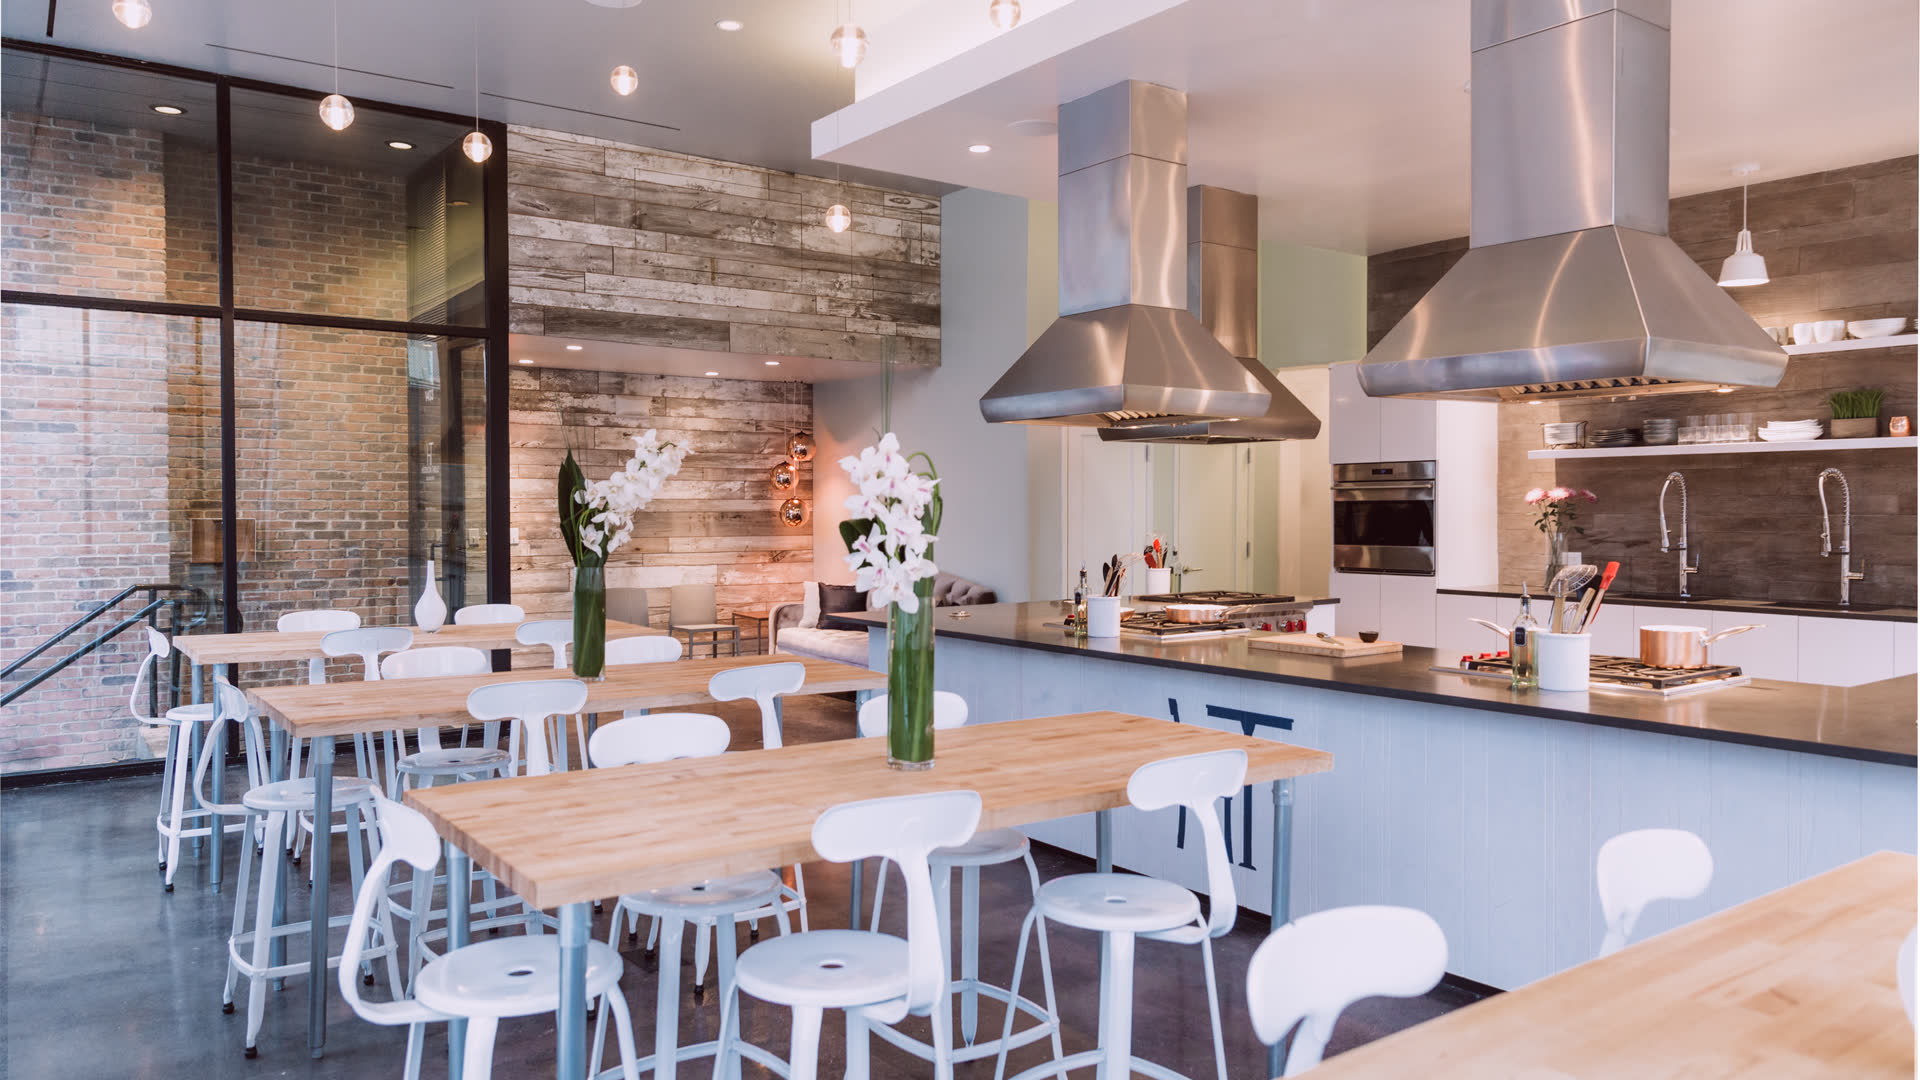 Cooking Class spaces